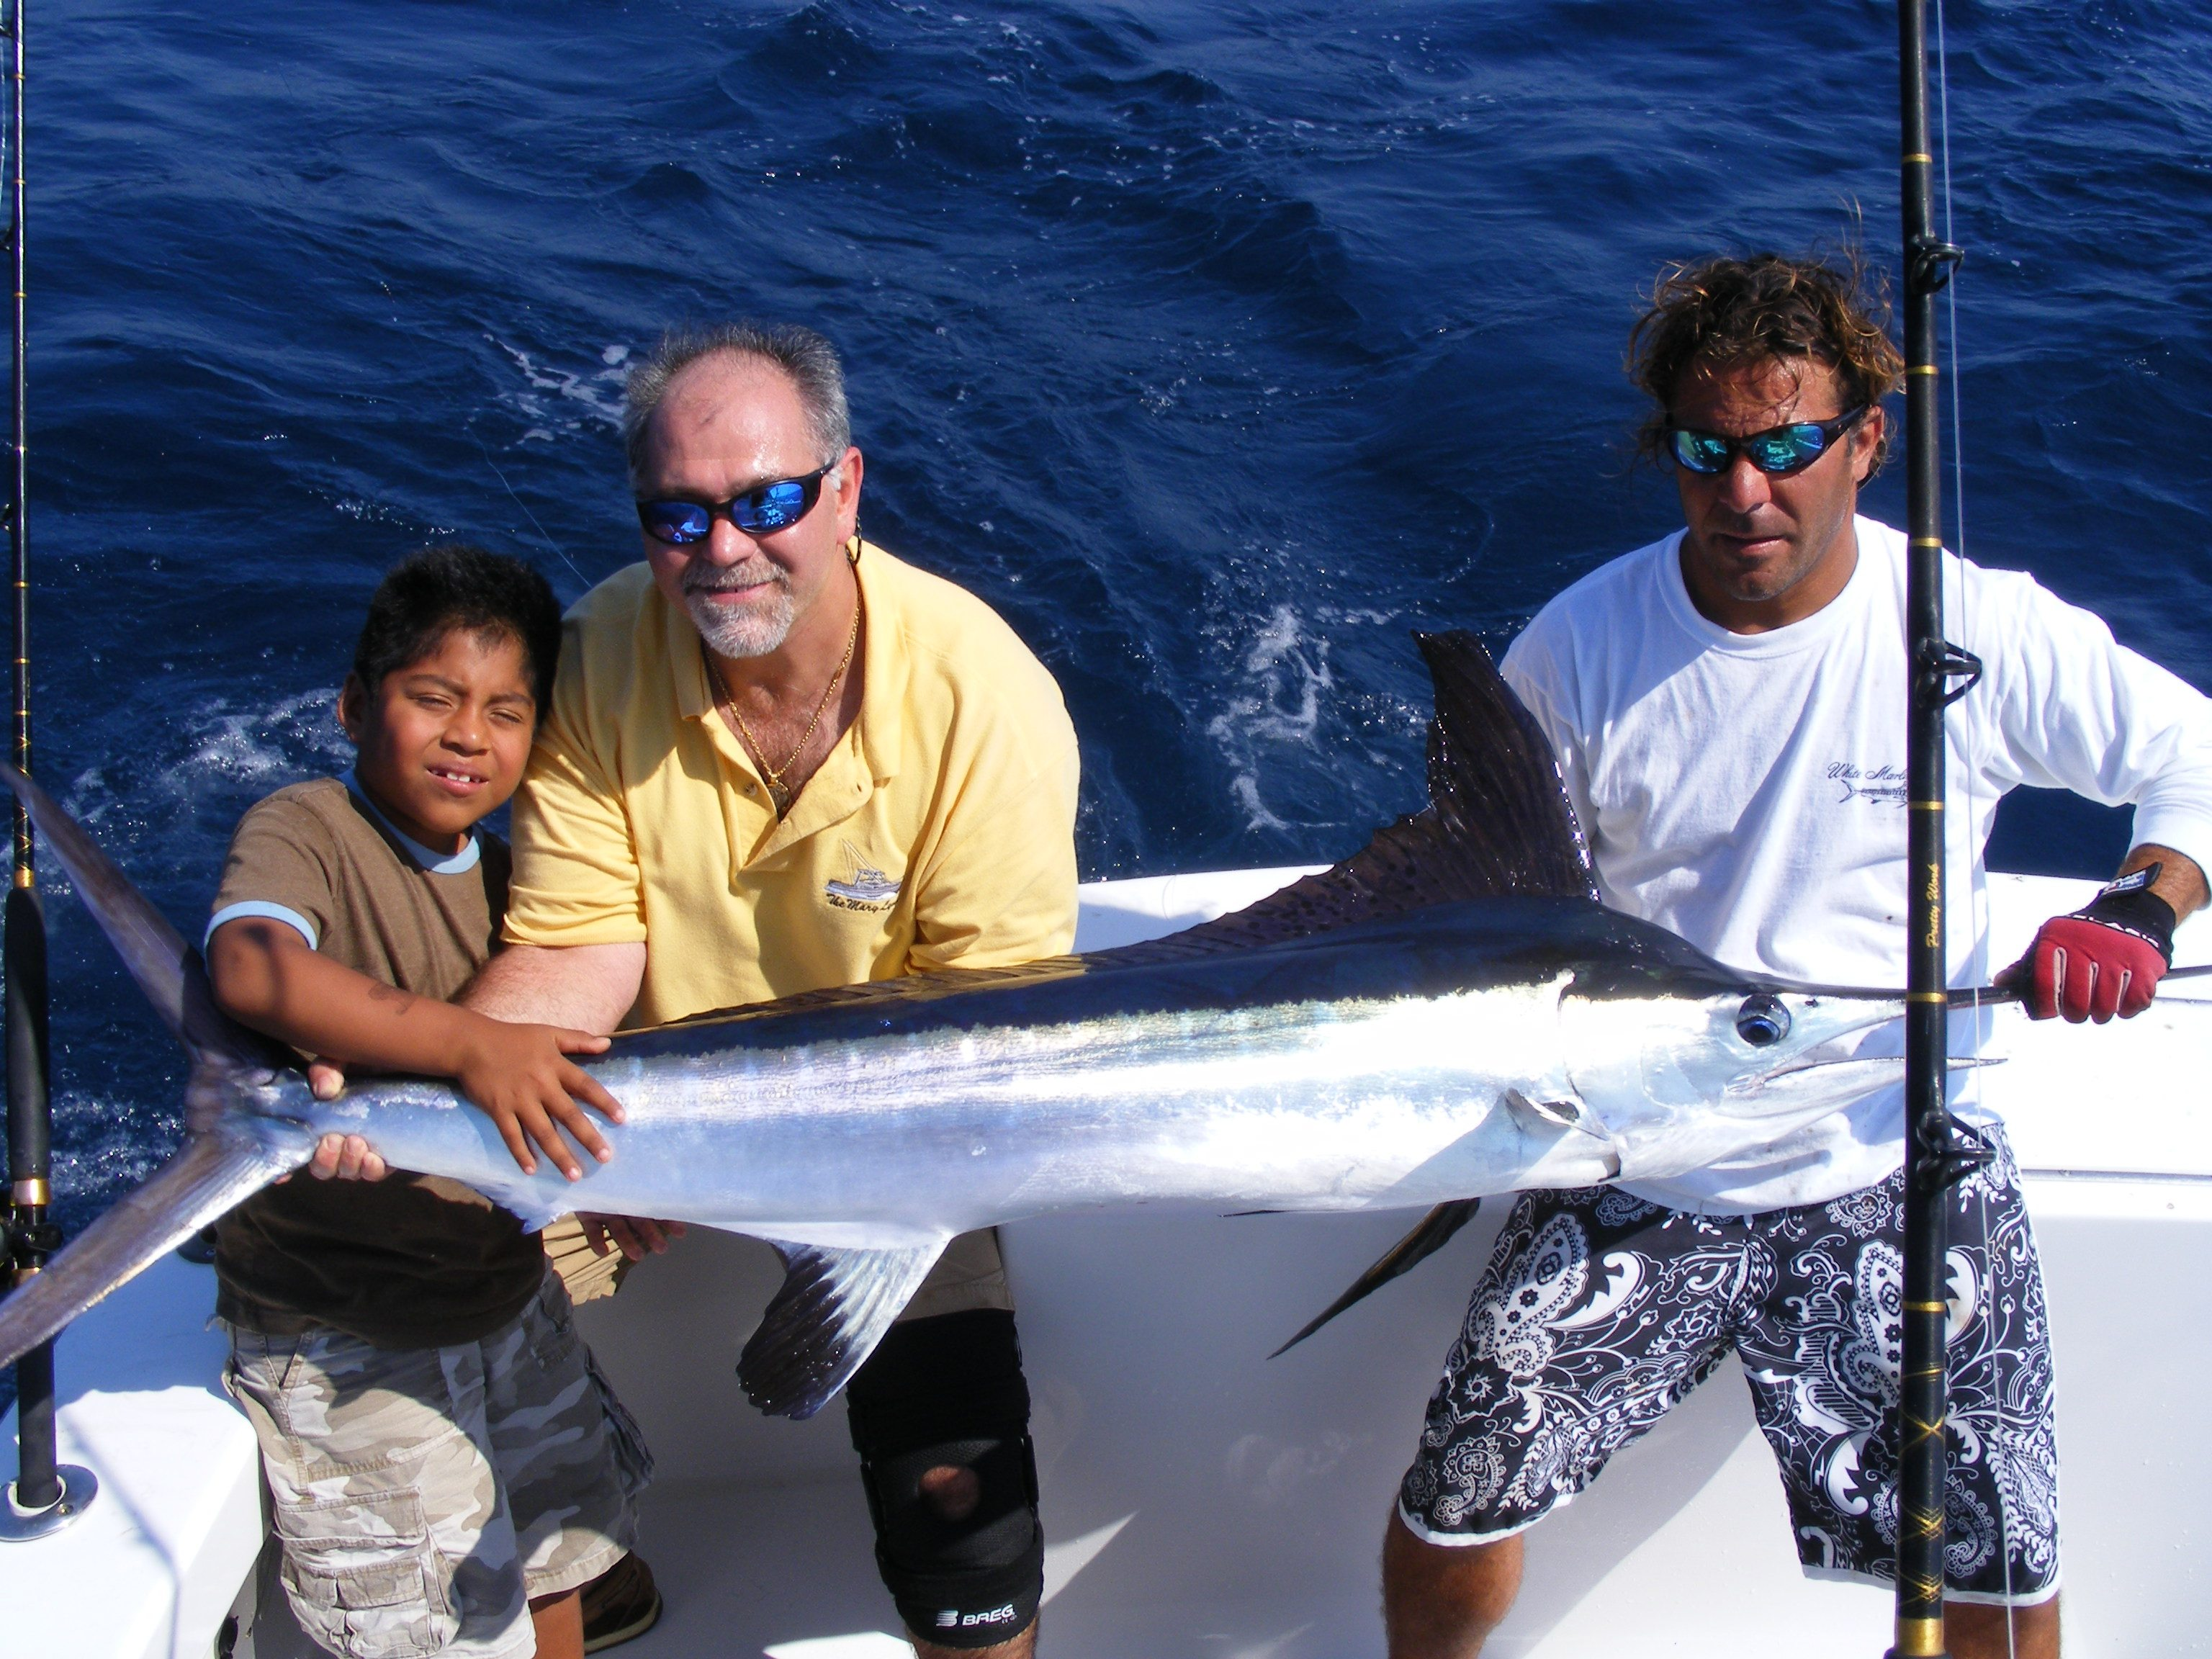 Ocean city maryland marlin fishing pictures group for Fishing in md